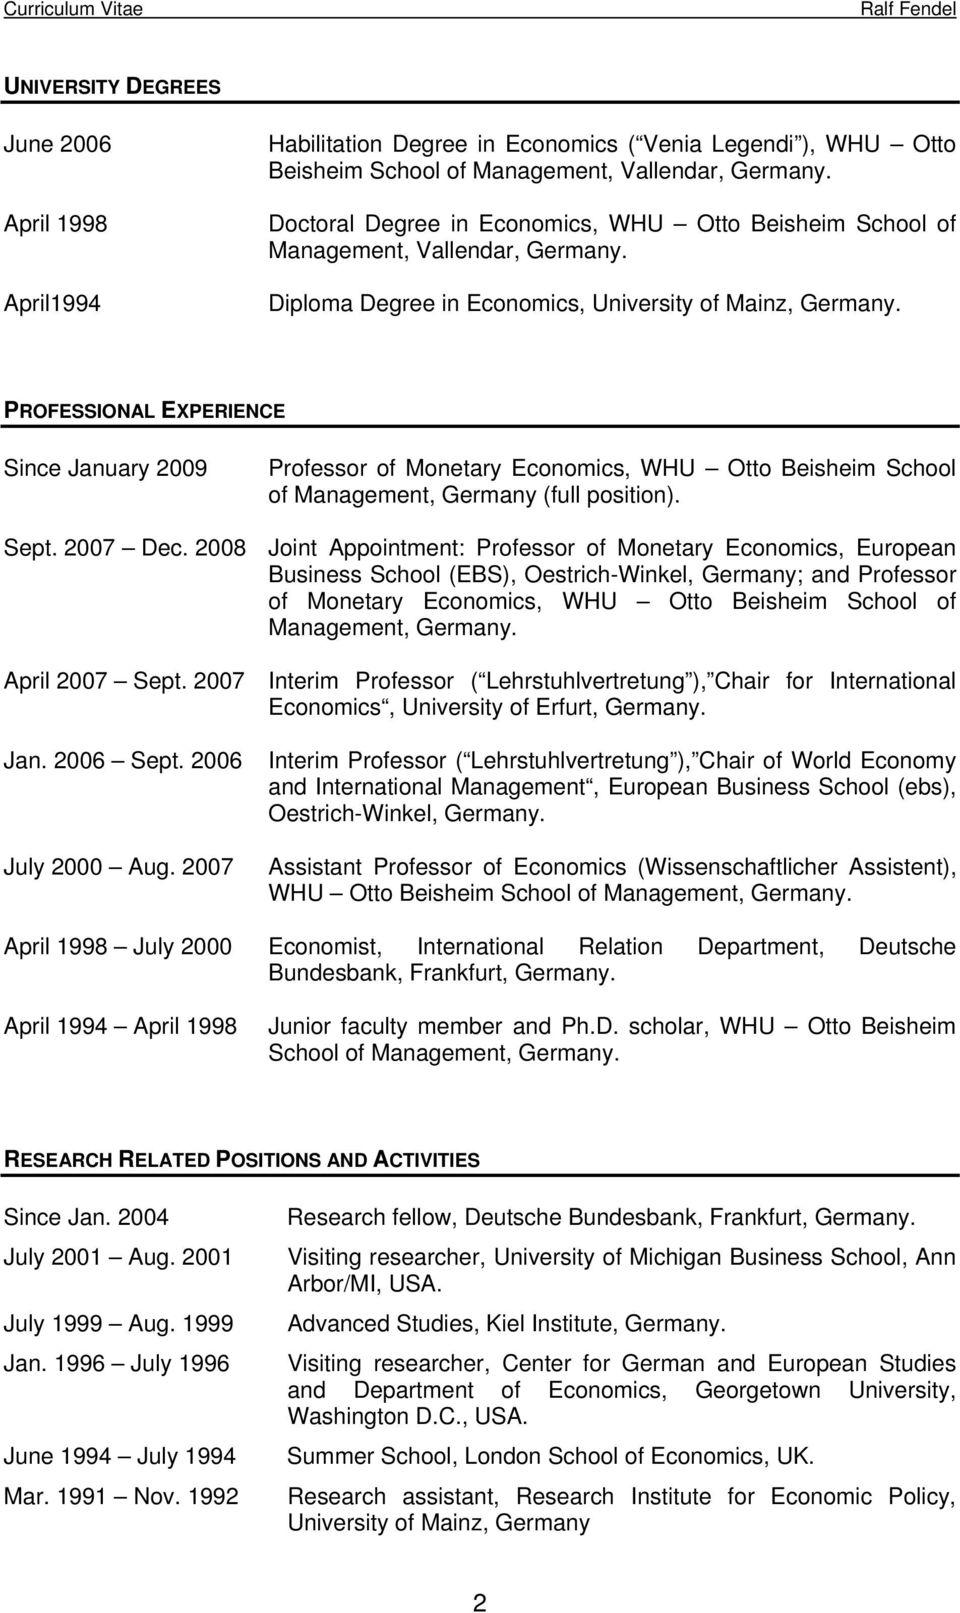 PROFESSIONAL EXPERIENCE Since January 2009 Professor of Monetary Economics, WHU Otto Beisheim School of Management, Germany (full position). Sept. 2007 Dec.